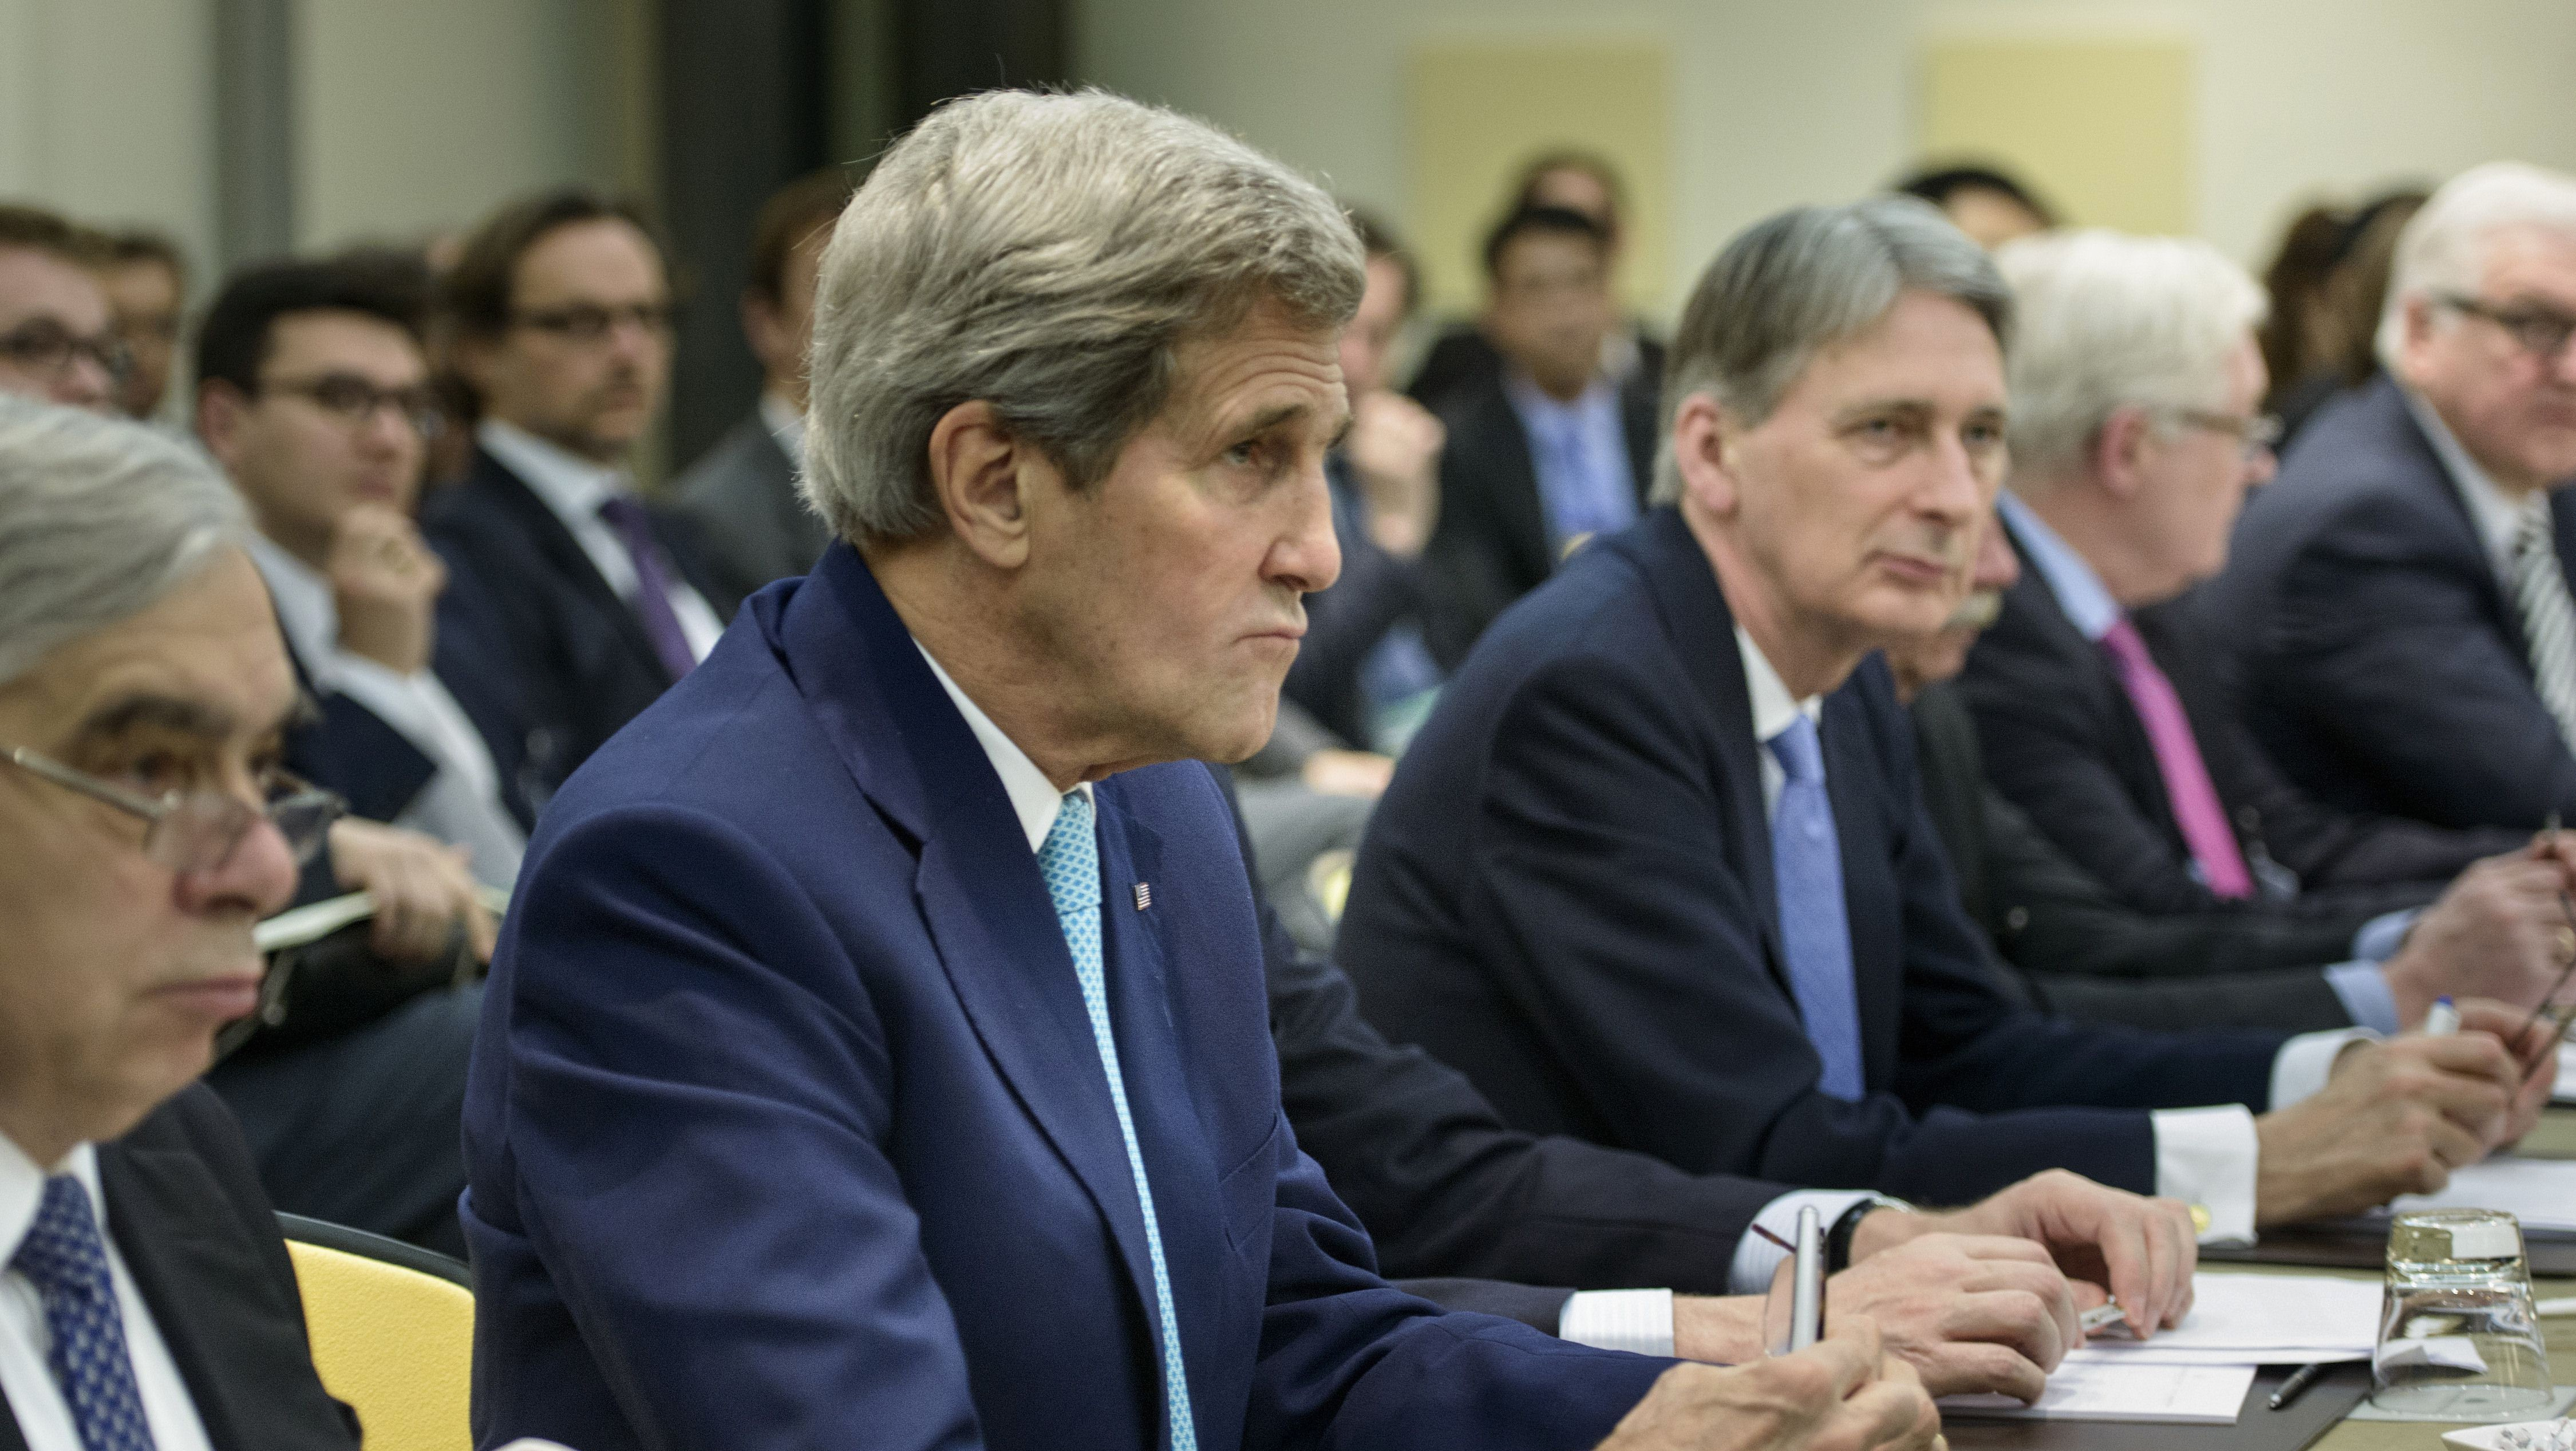 'Tricky Issues' and Cautious Optimism: Iran Nuclear Talks Continue as Deadline Approaches Fast